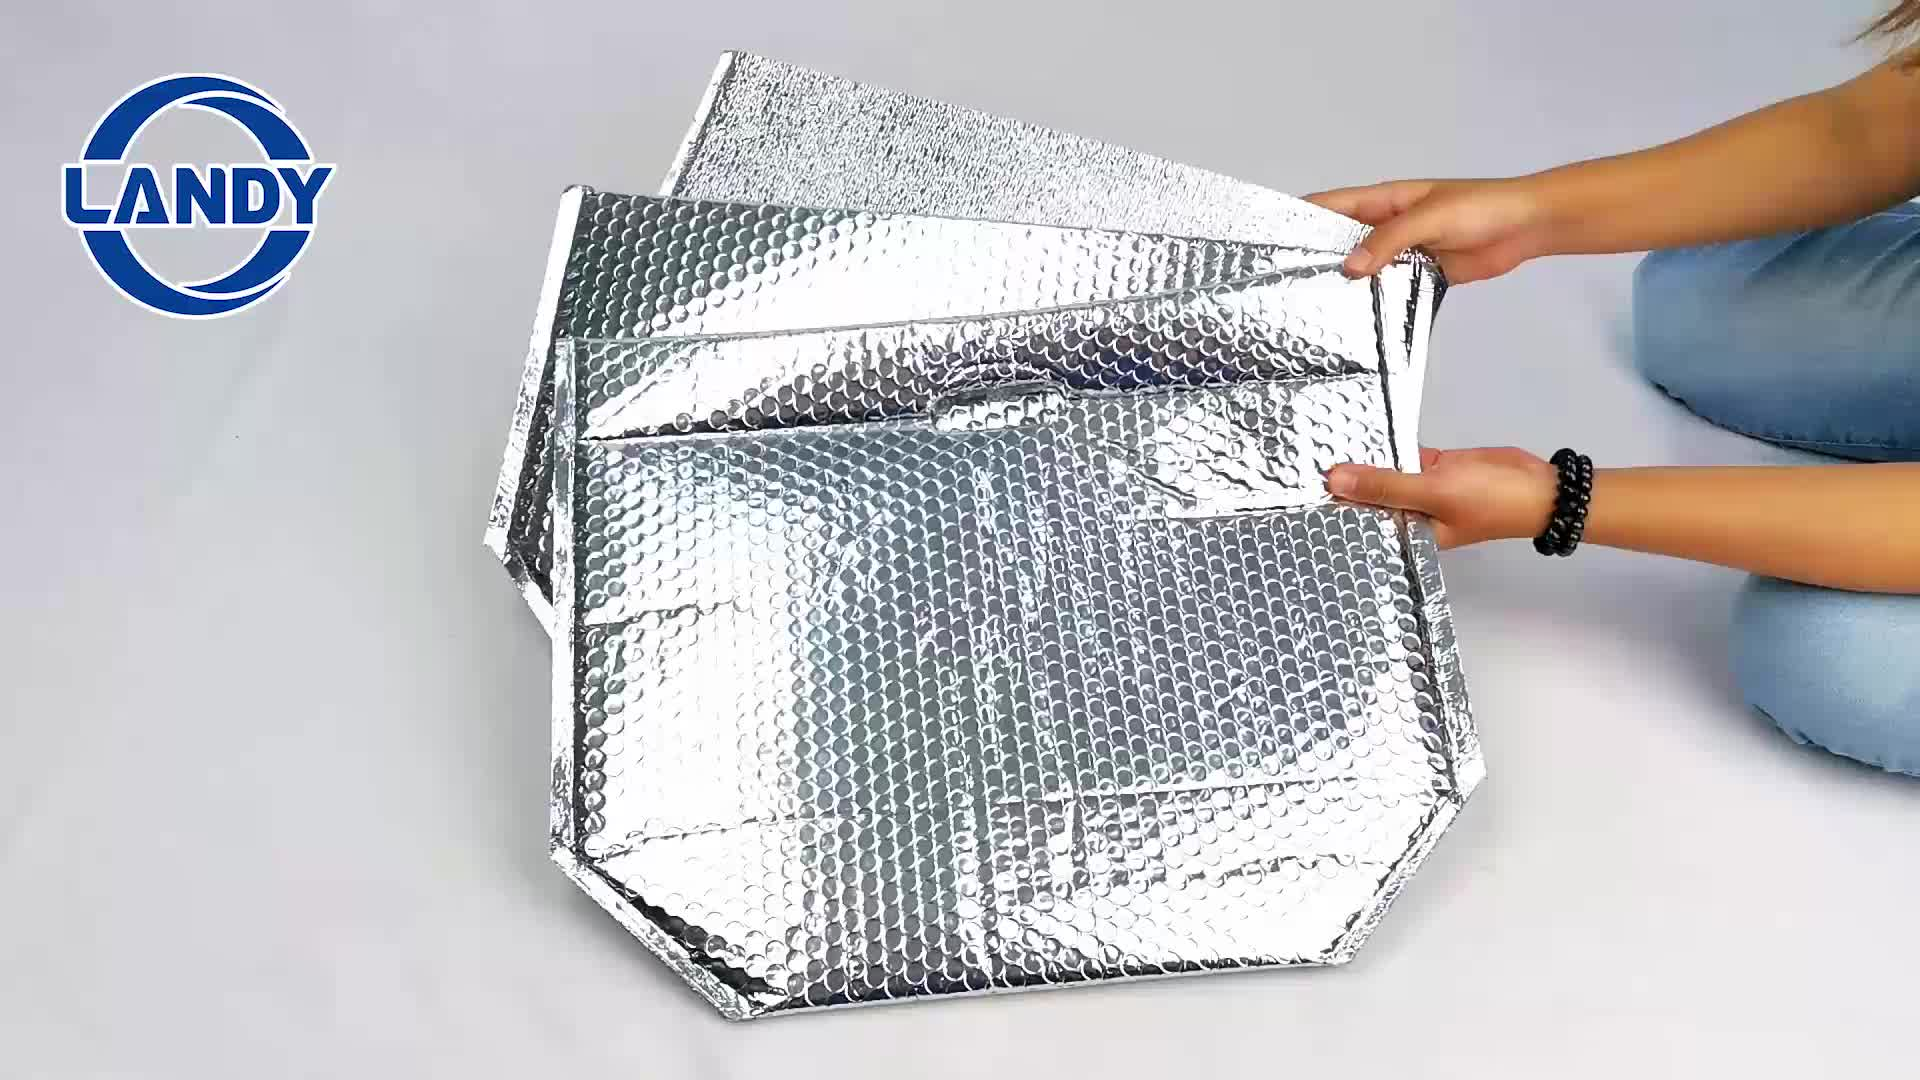 Aluminum foil thermal insulation insulated box liner cooler bag liner,Cold Shipping Packaging insulated cooler liner material